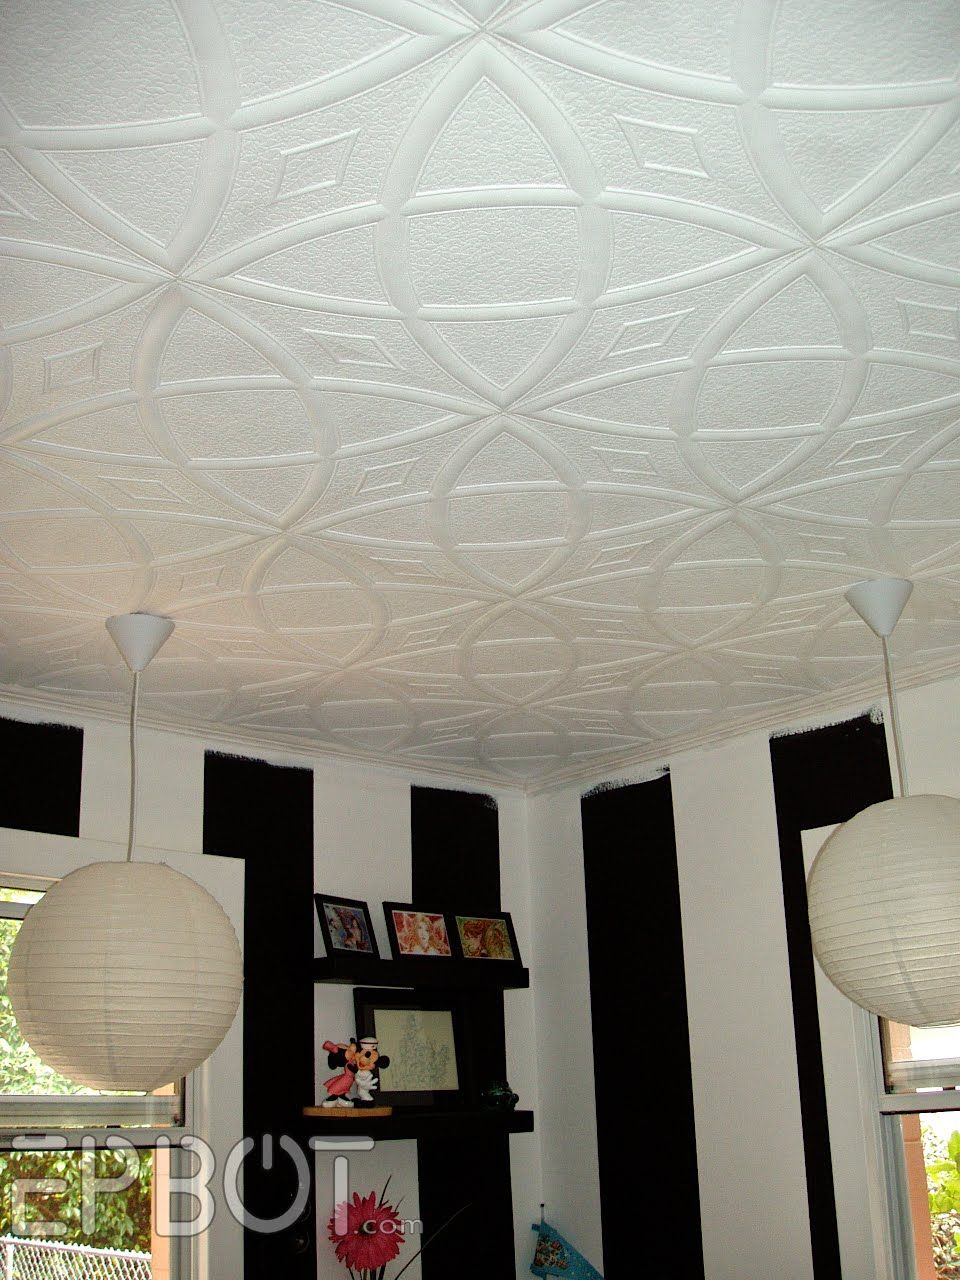 I Have To Rave About These Ceiling Tiles For A Second Theyre Made